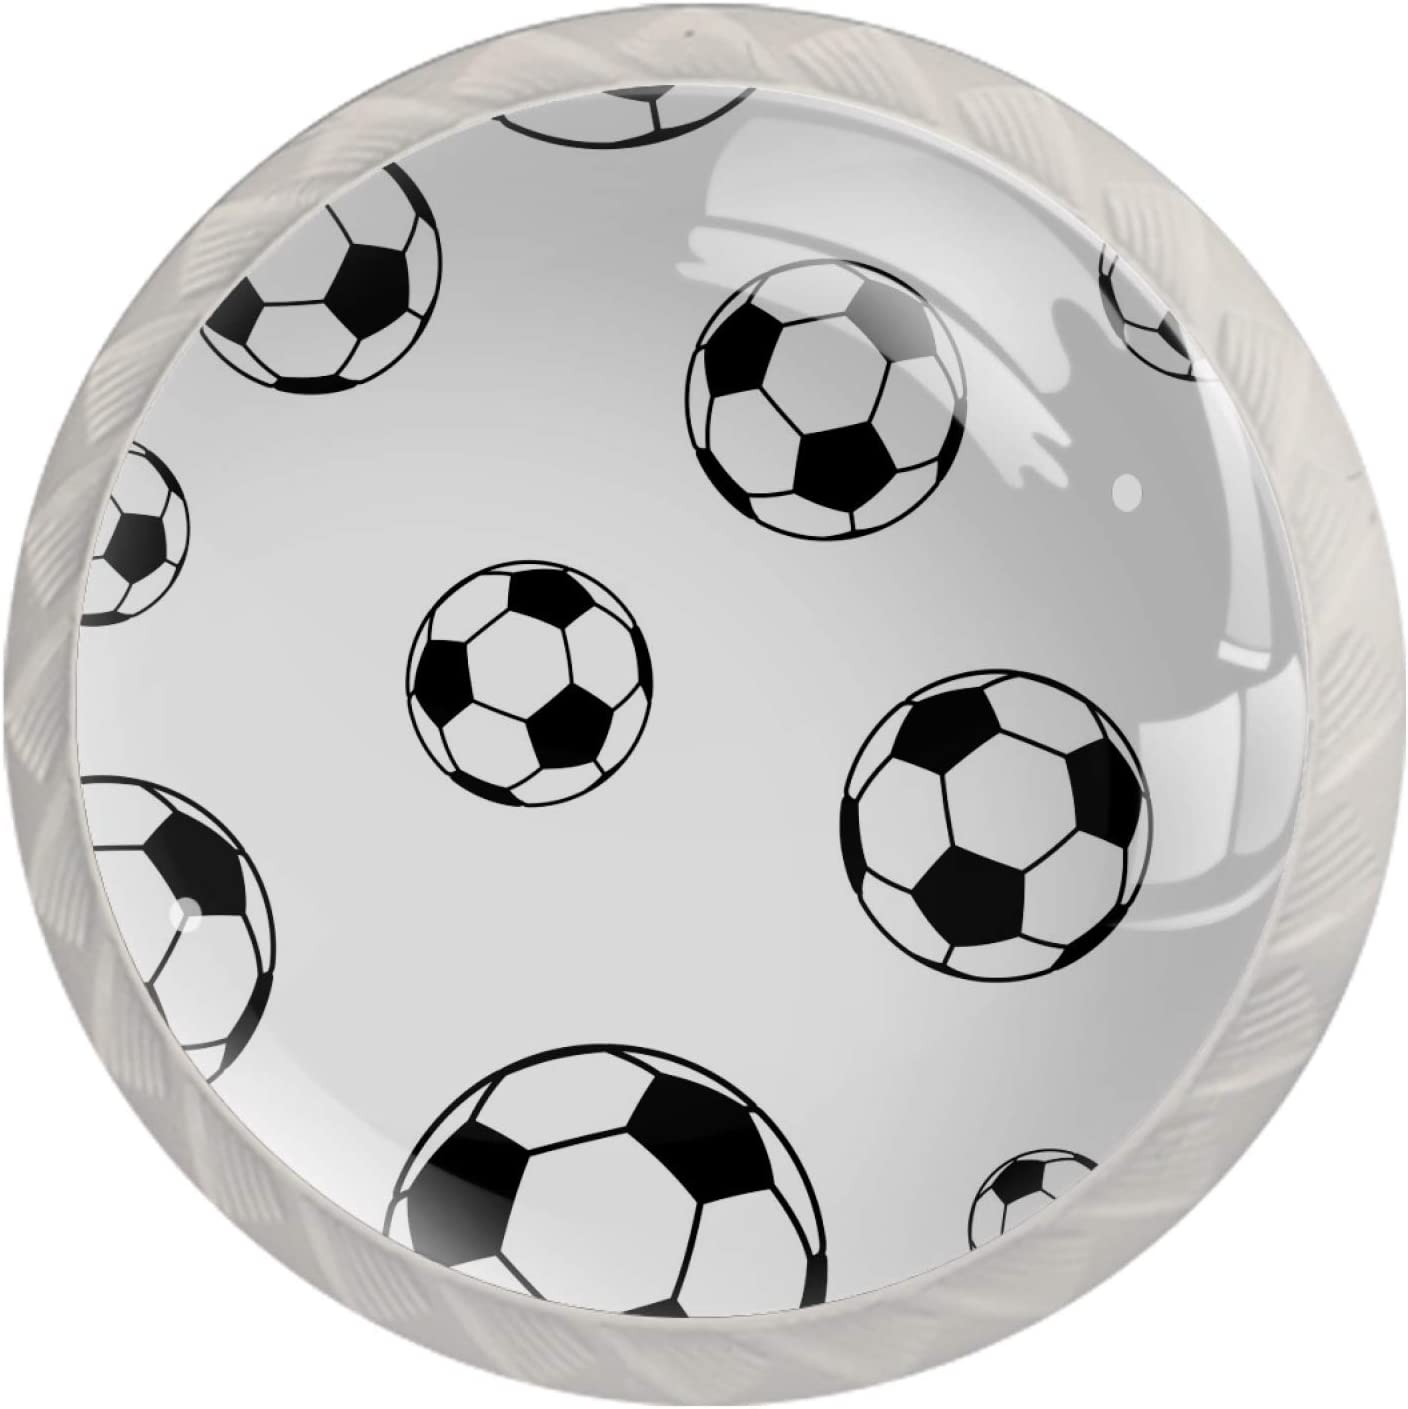 Door Knobs Soccer Football Louisville-Jefferson County Mall Black Max 54% OFF Drawer Handl Lovely White